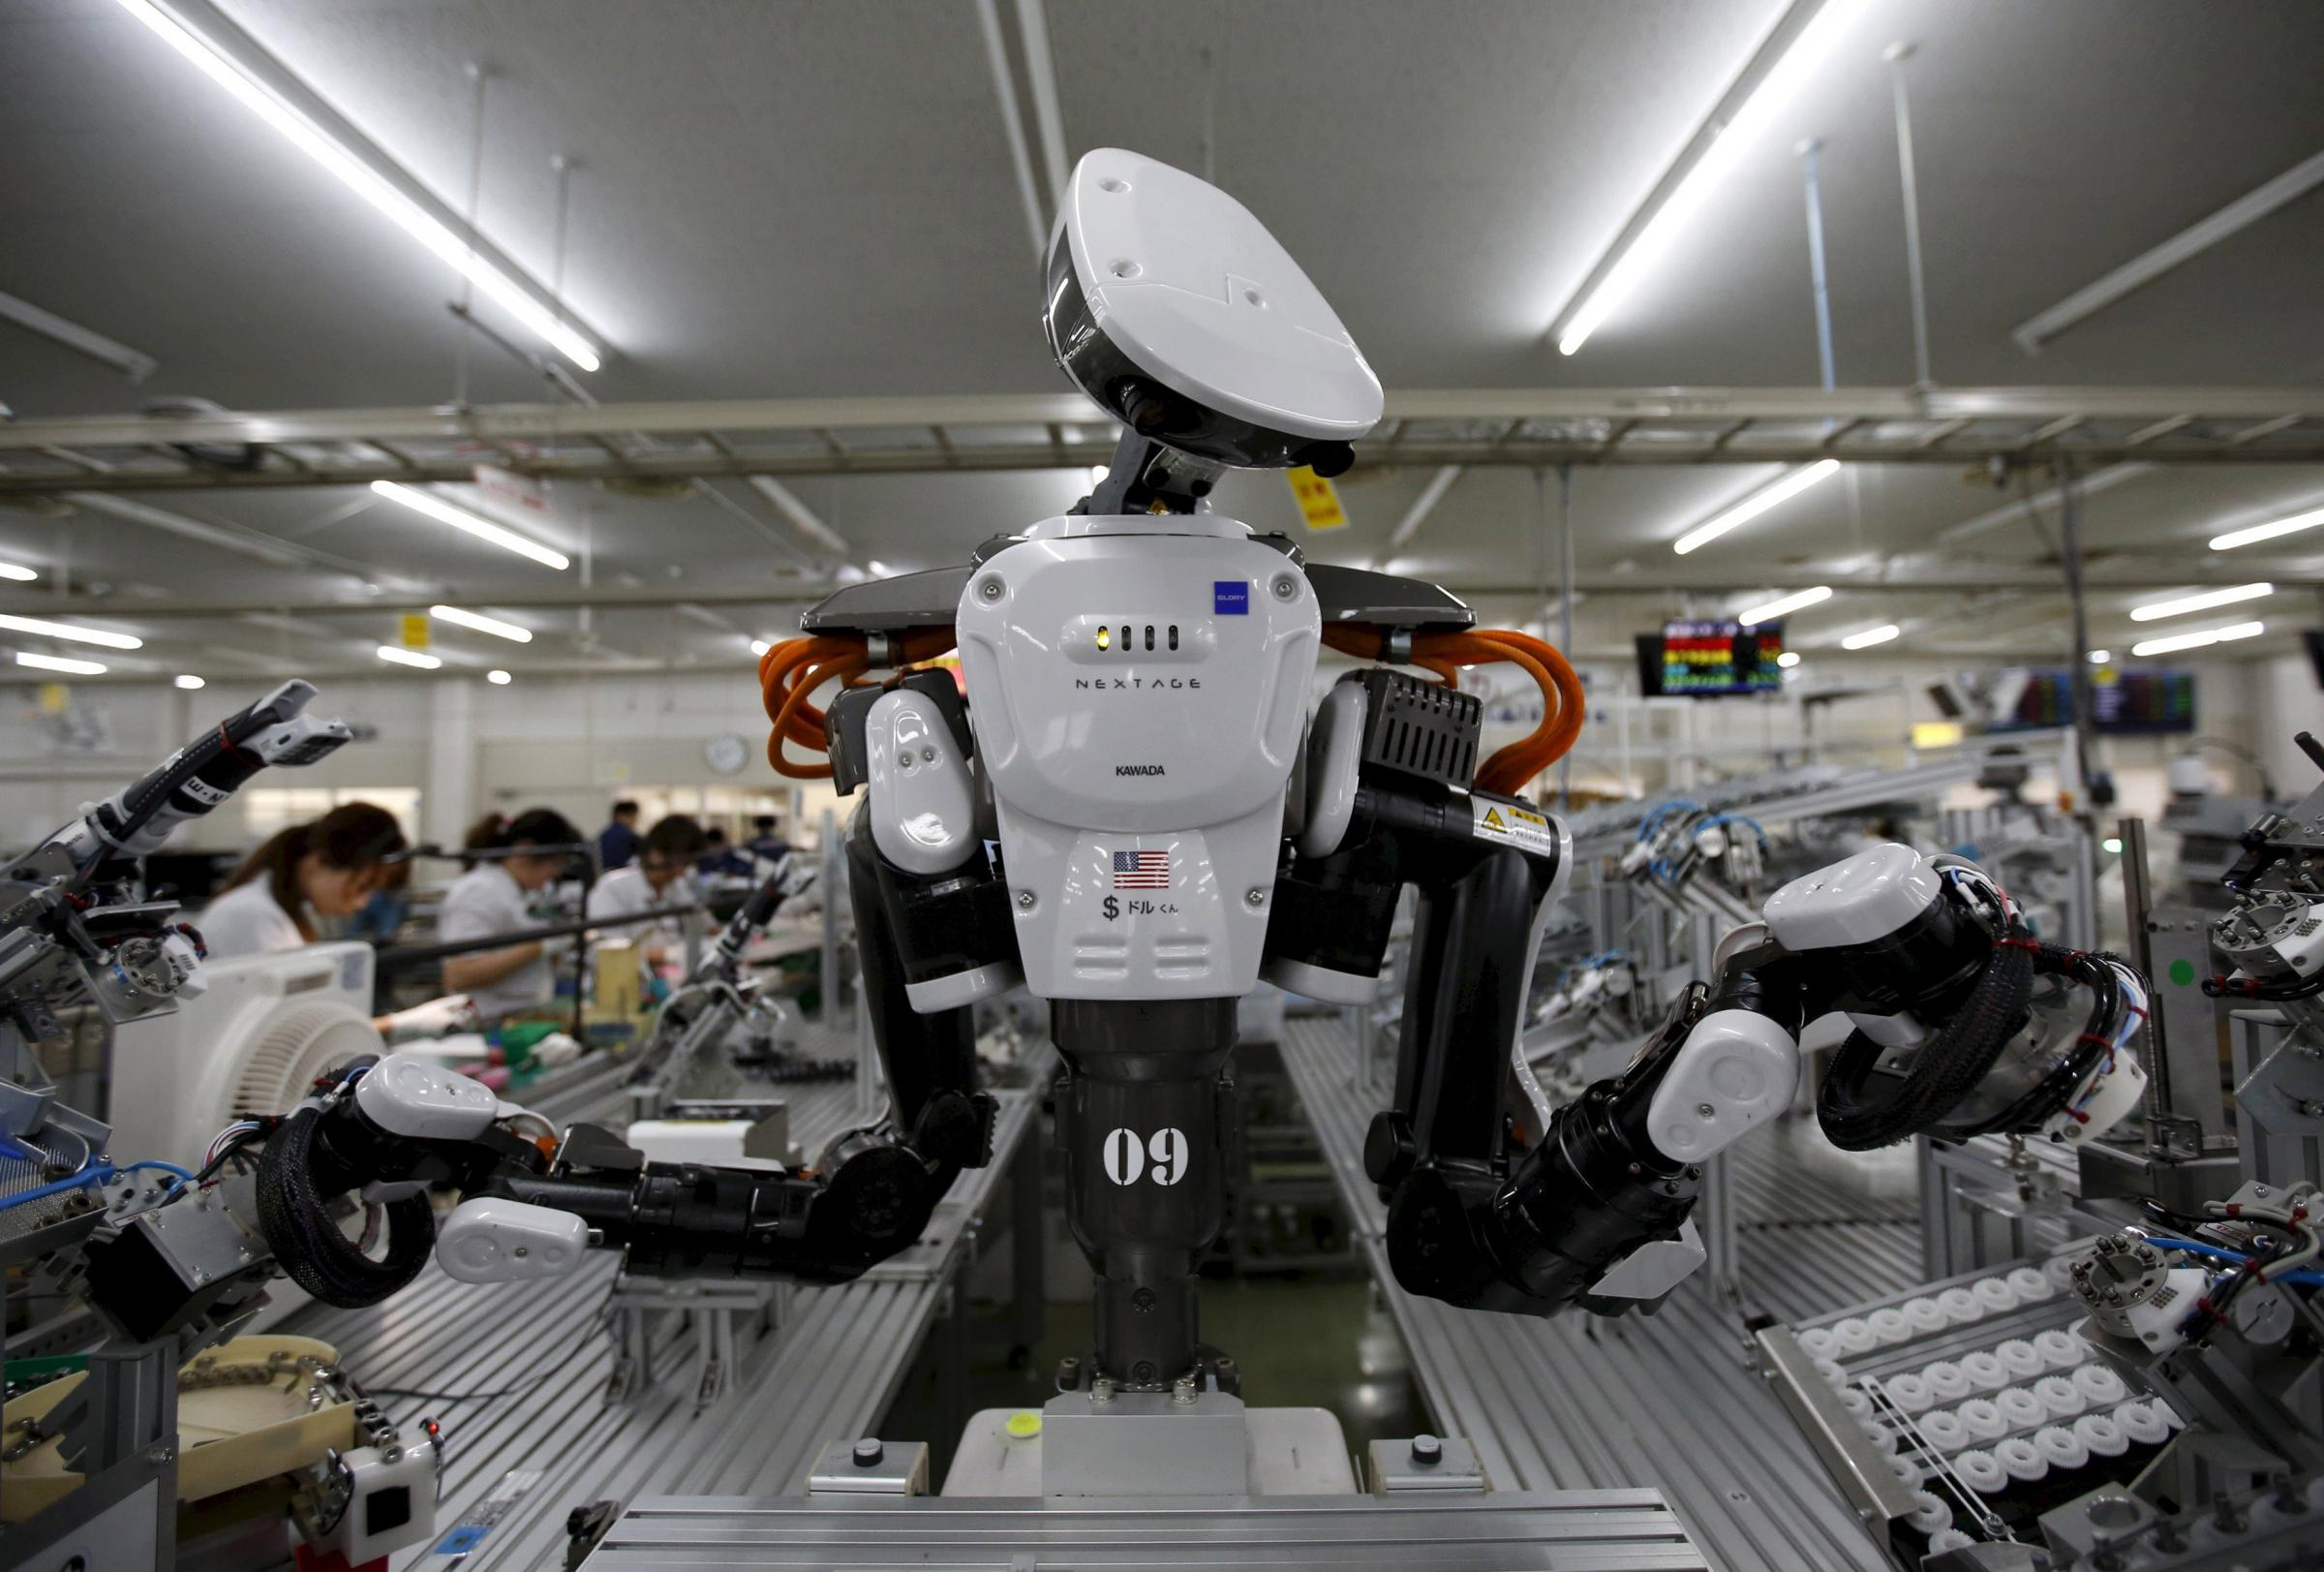 A new report reveals the UK is lagging behind when it comes to preparing for increased automation in the workplace.